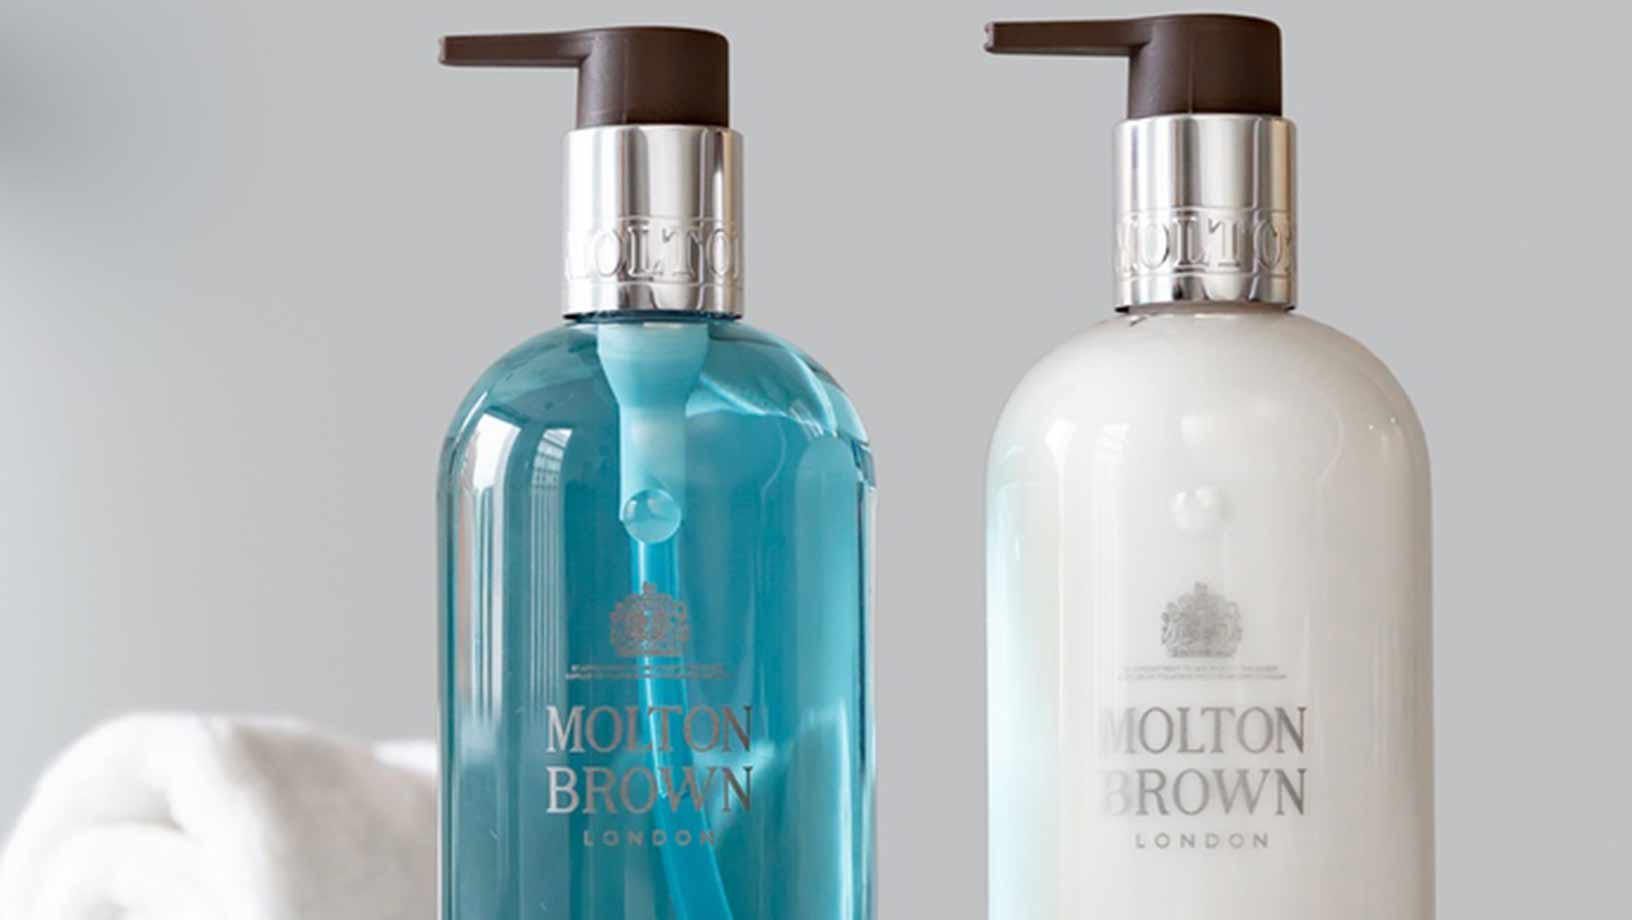 Two Molton Brown London products, one handwash in blue, one hand lotion in white with a white towel in the background